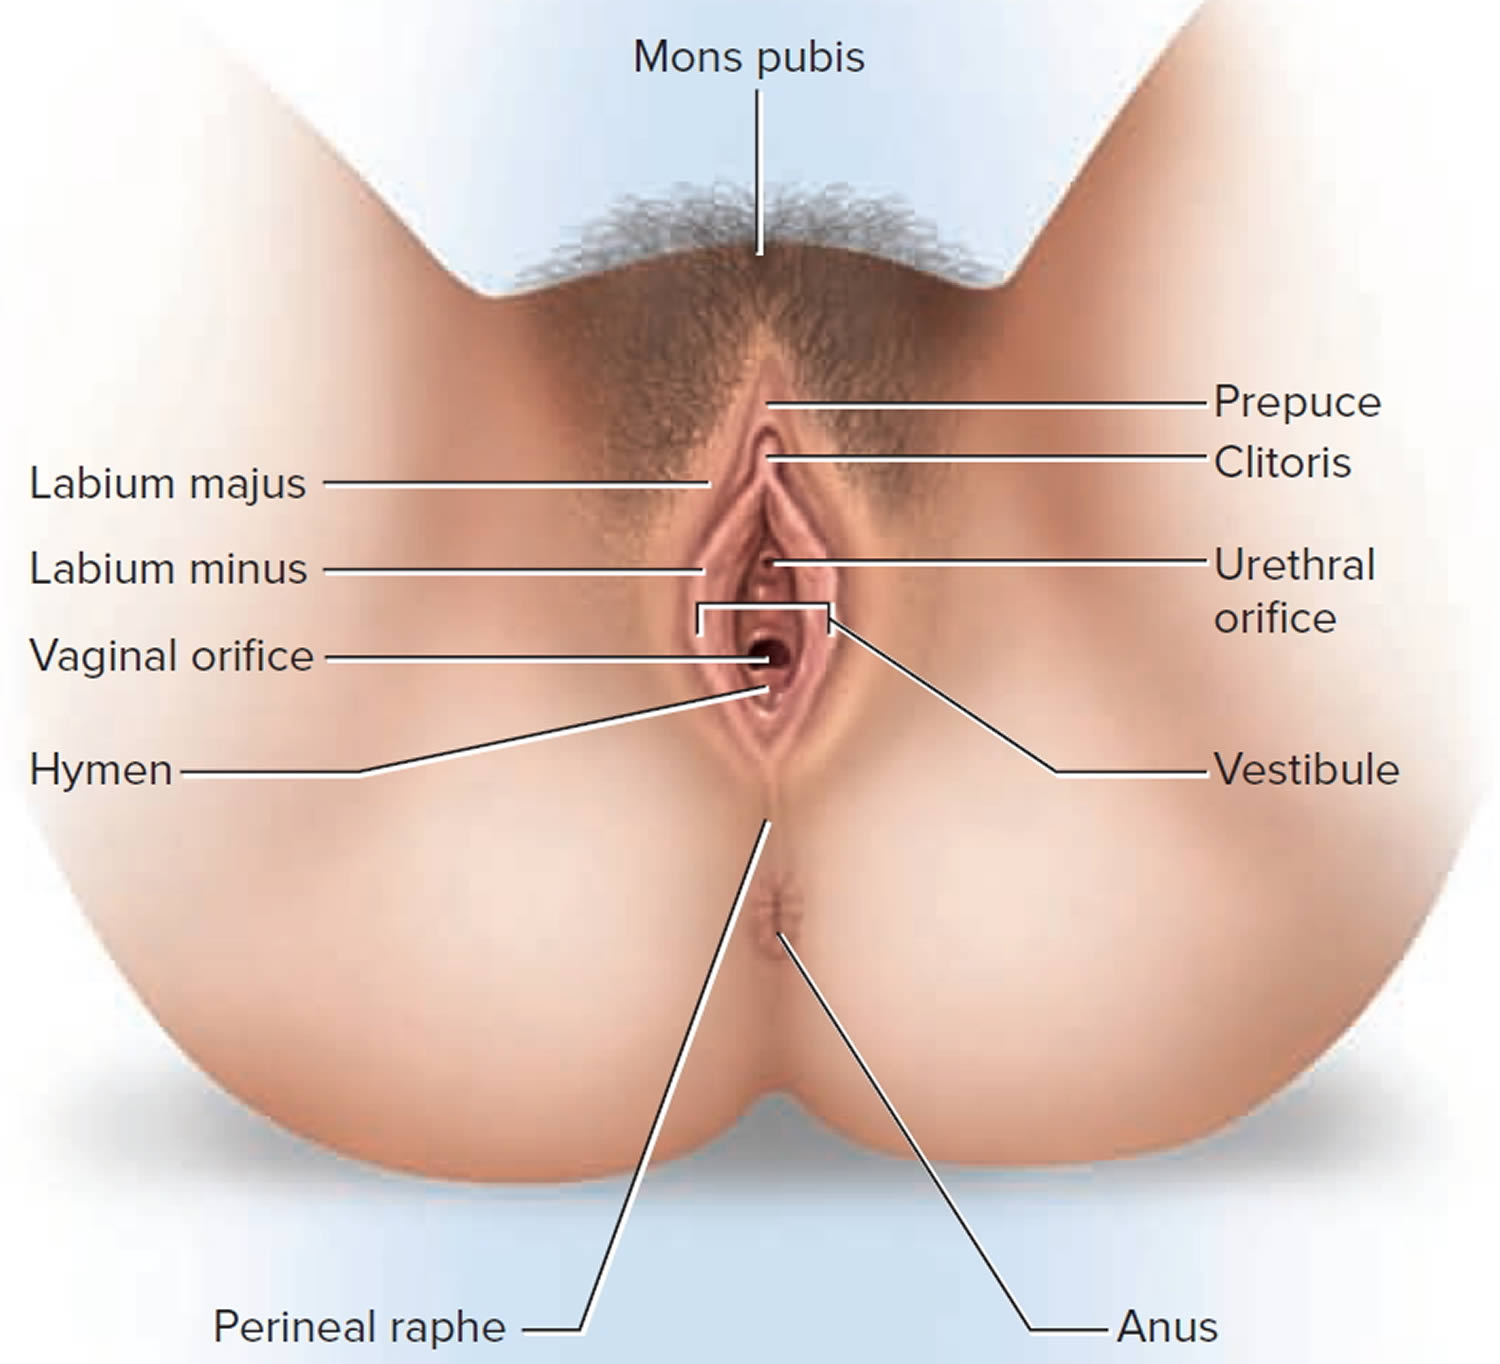 vaginal pimples - causes of pimple in or near vaginal area on